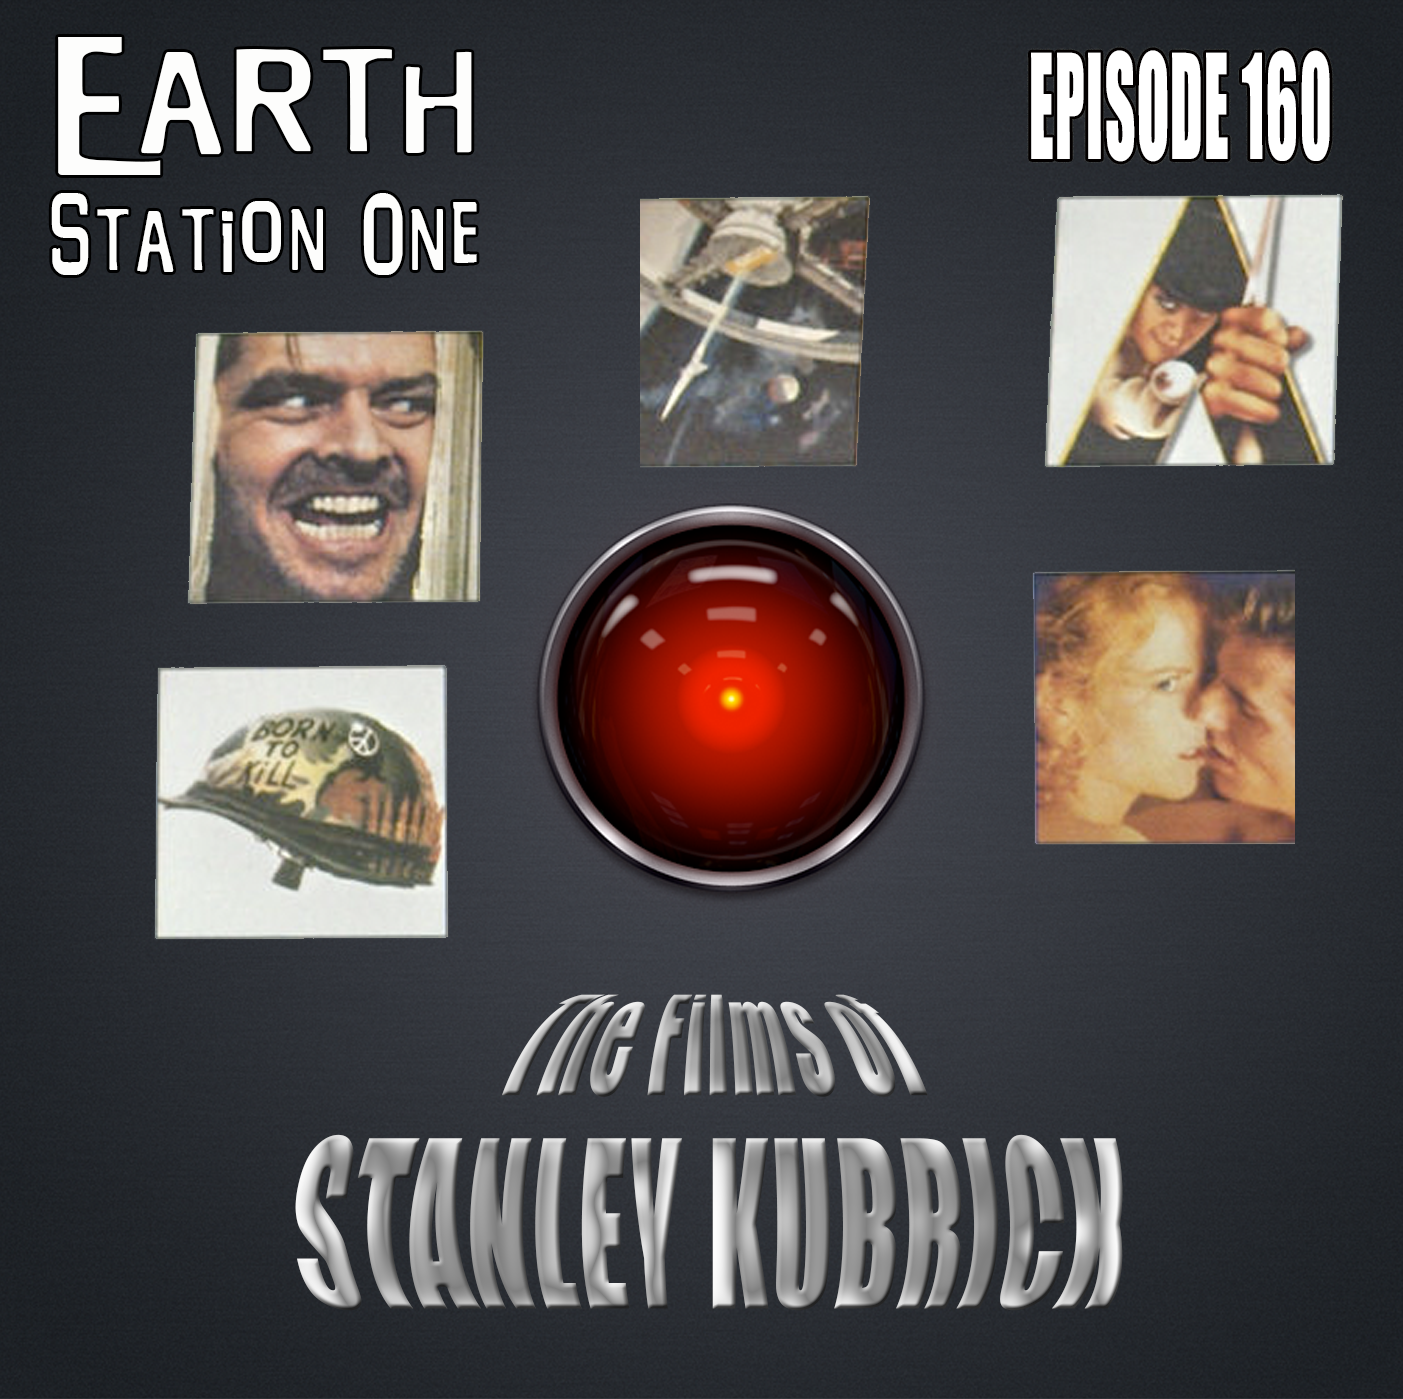 Earth Station One Episode 160 - The Films of Stanley Kubrick